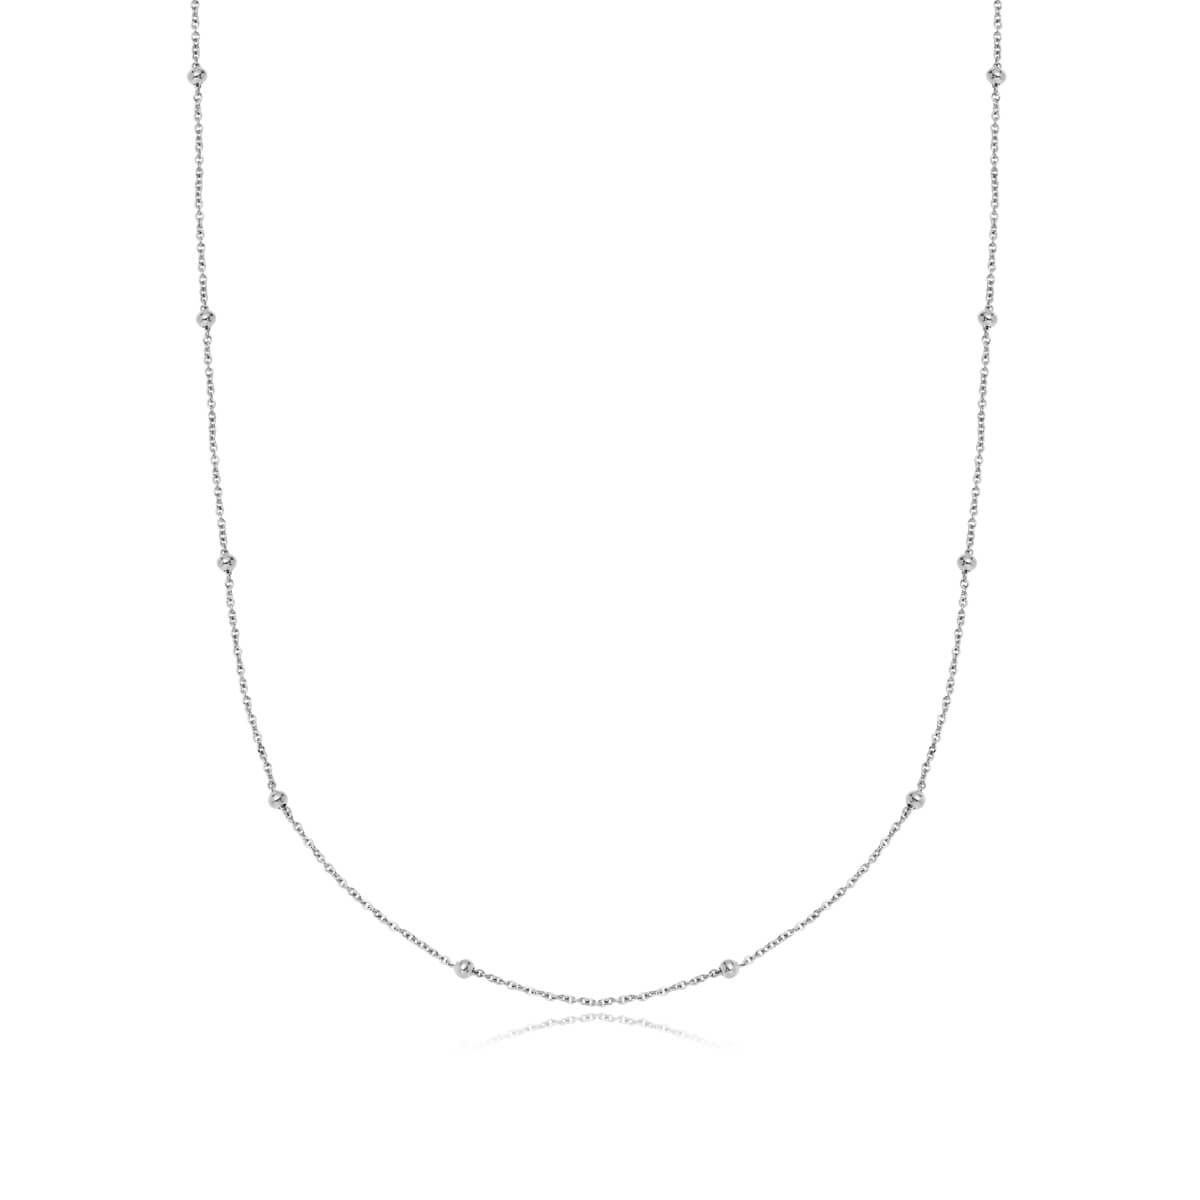 Sphere Chain Necklace 20 in (Silver)